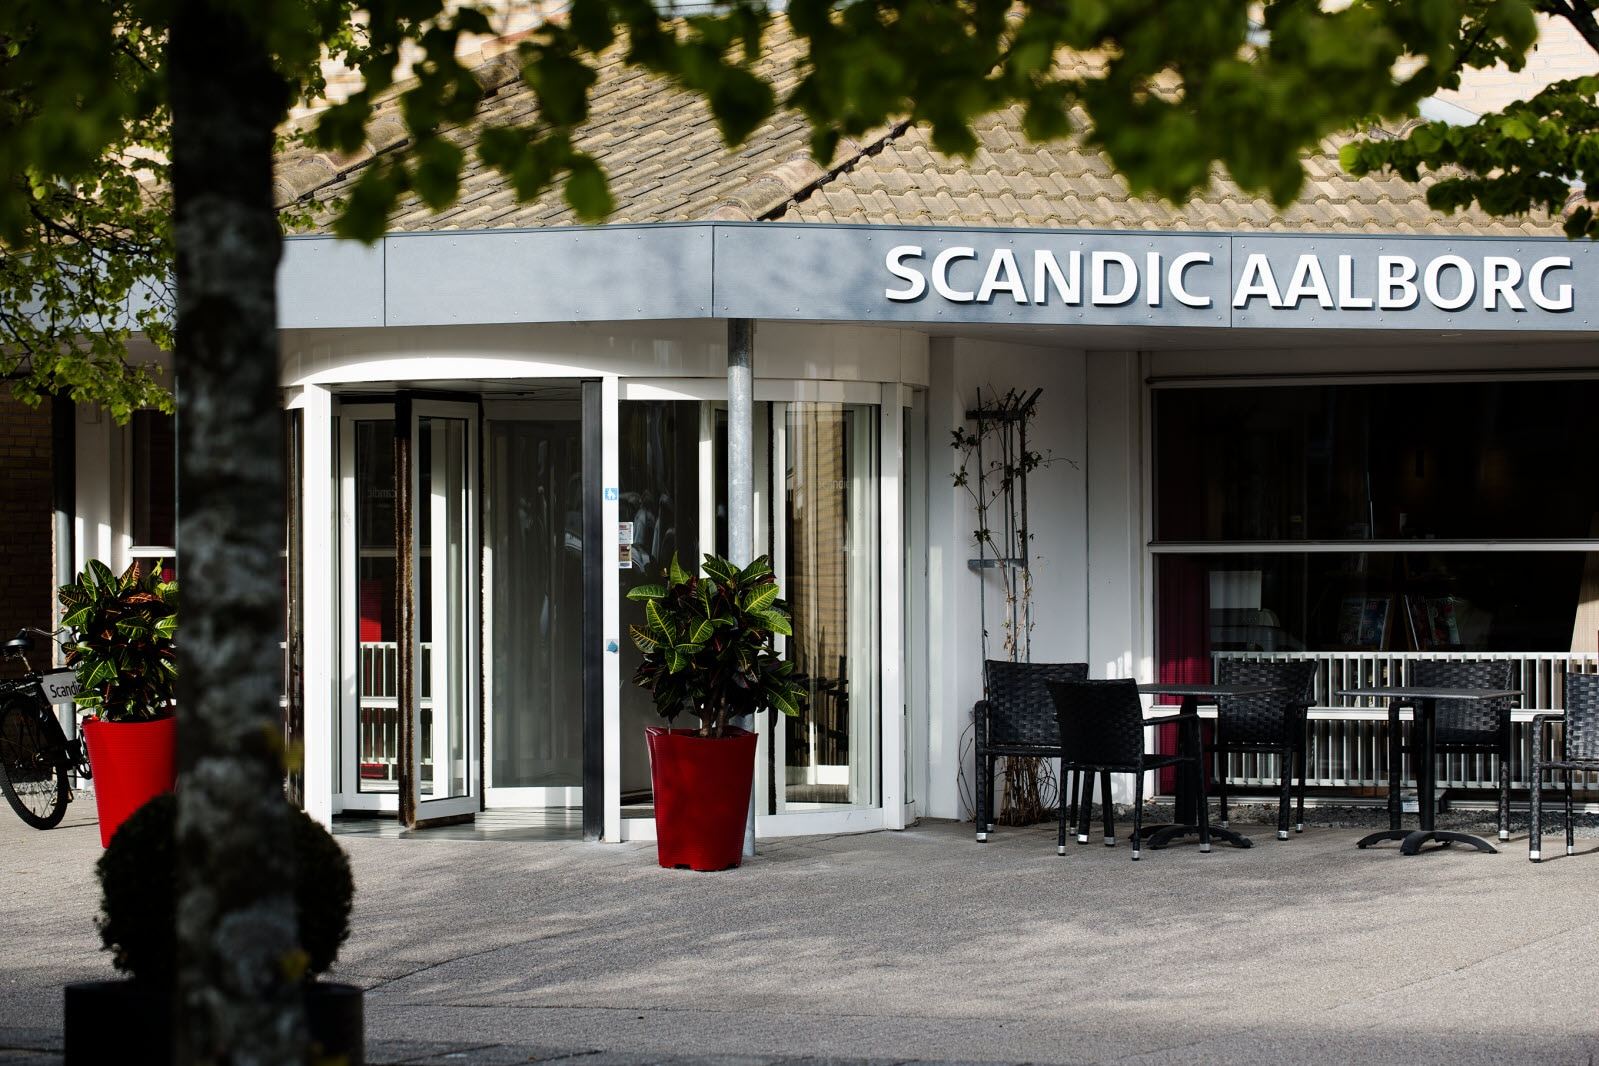 Scandic Aalborg, hotel entrance, day time